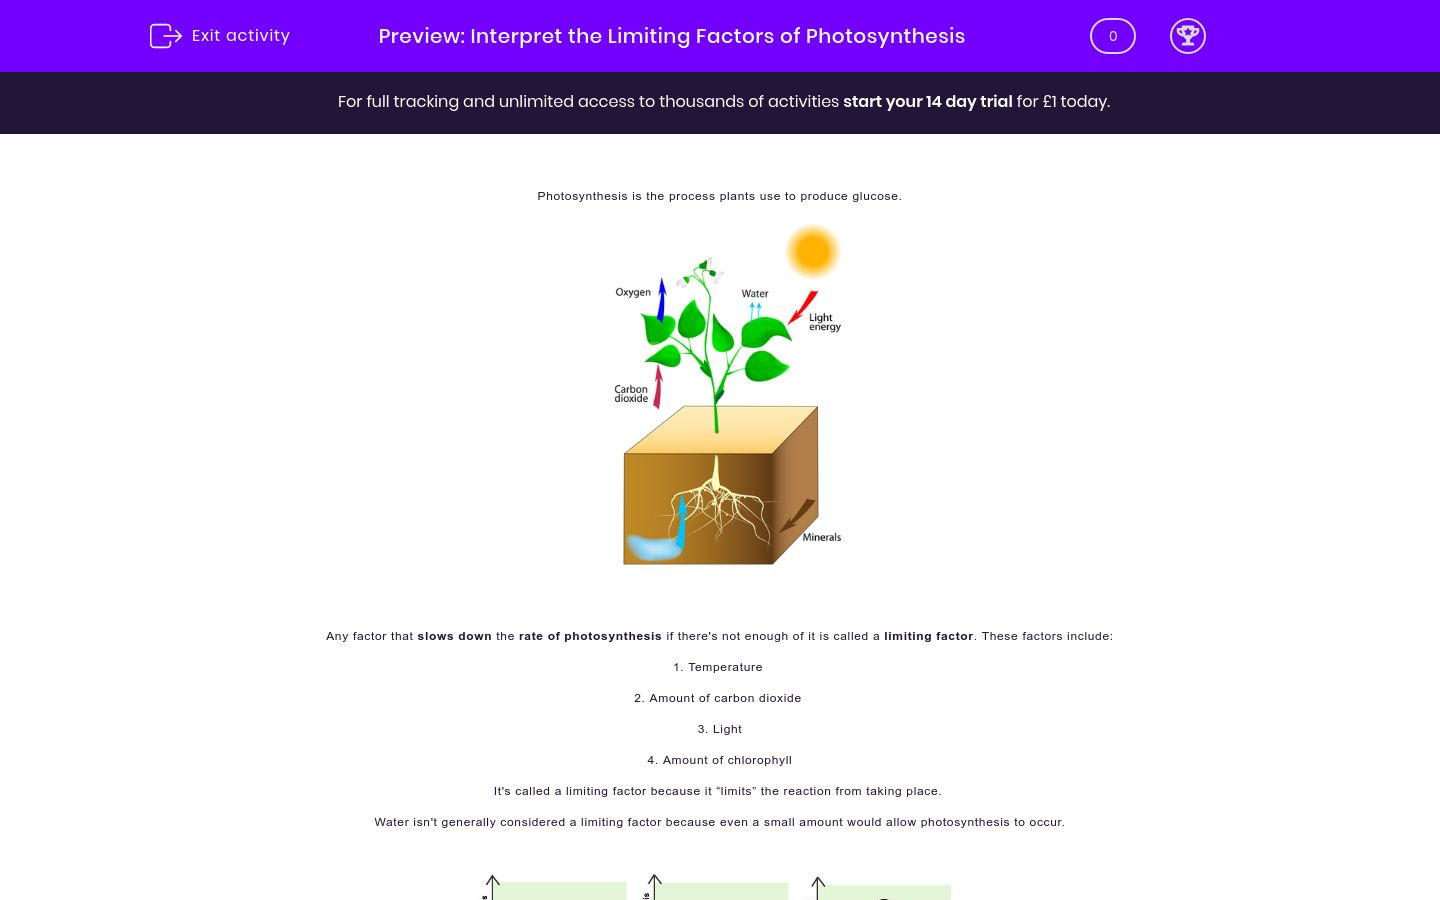 'Interpret the Limiting Factors of Photosynthesis' worksheet